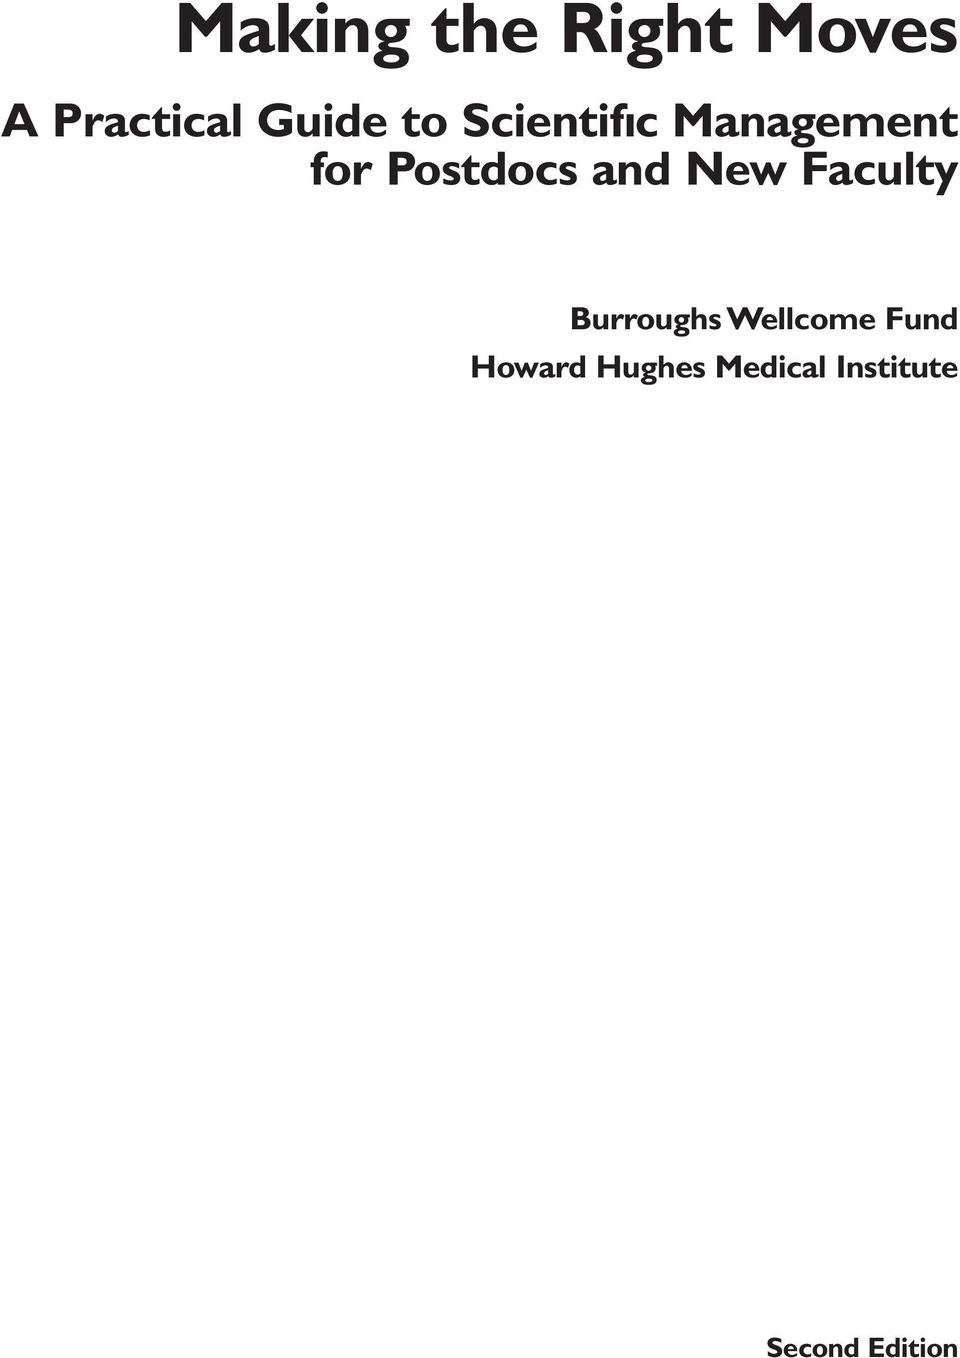 New Faculty Burroughs Wellcome Fund